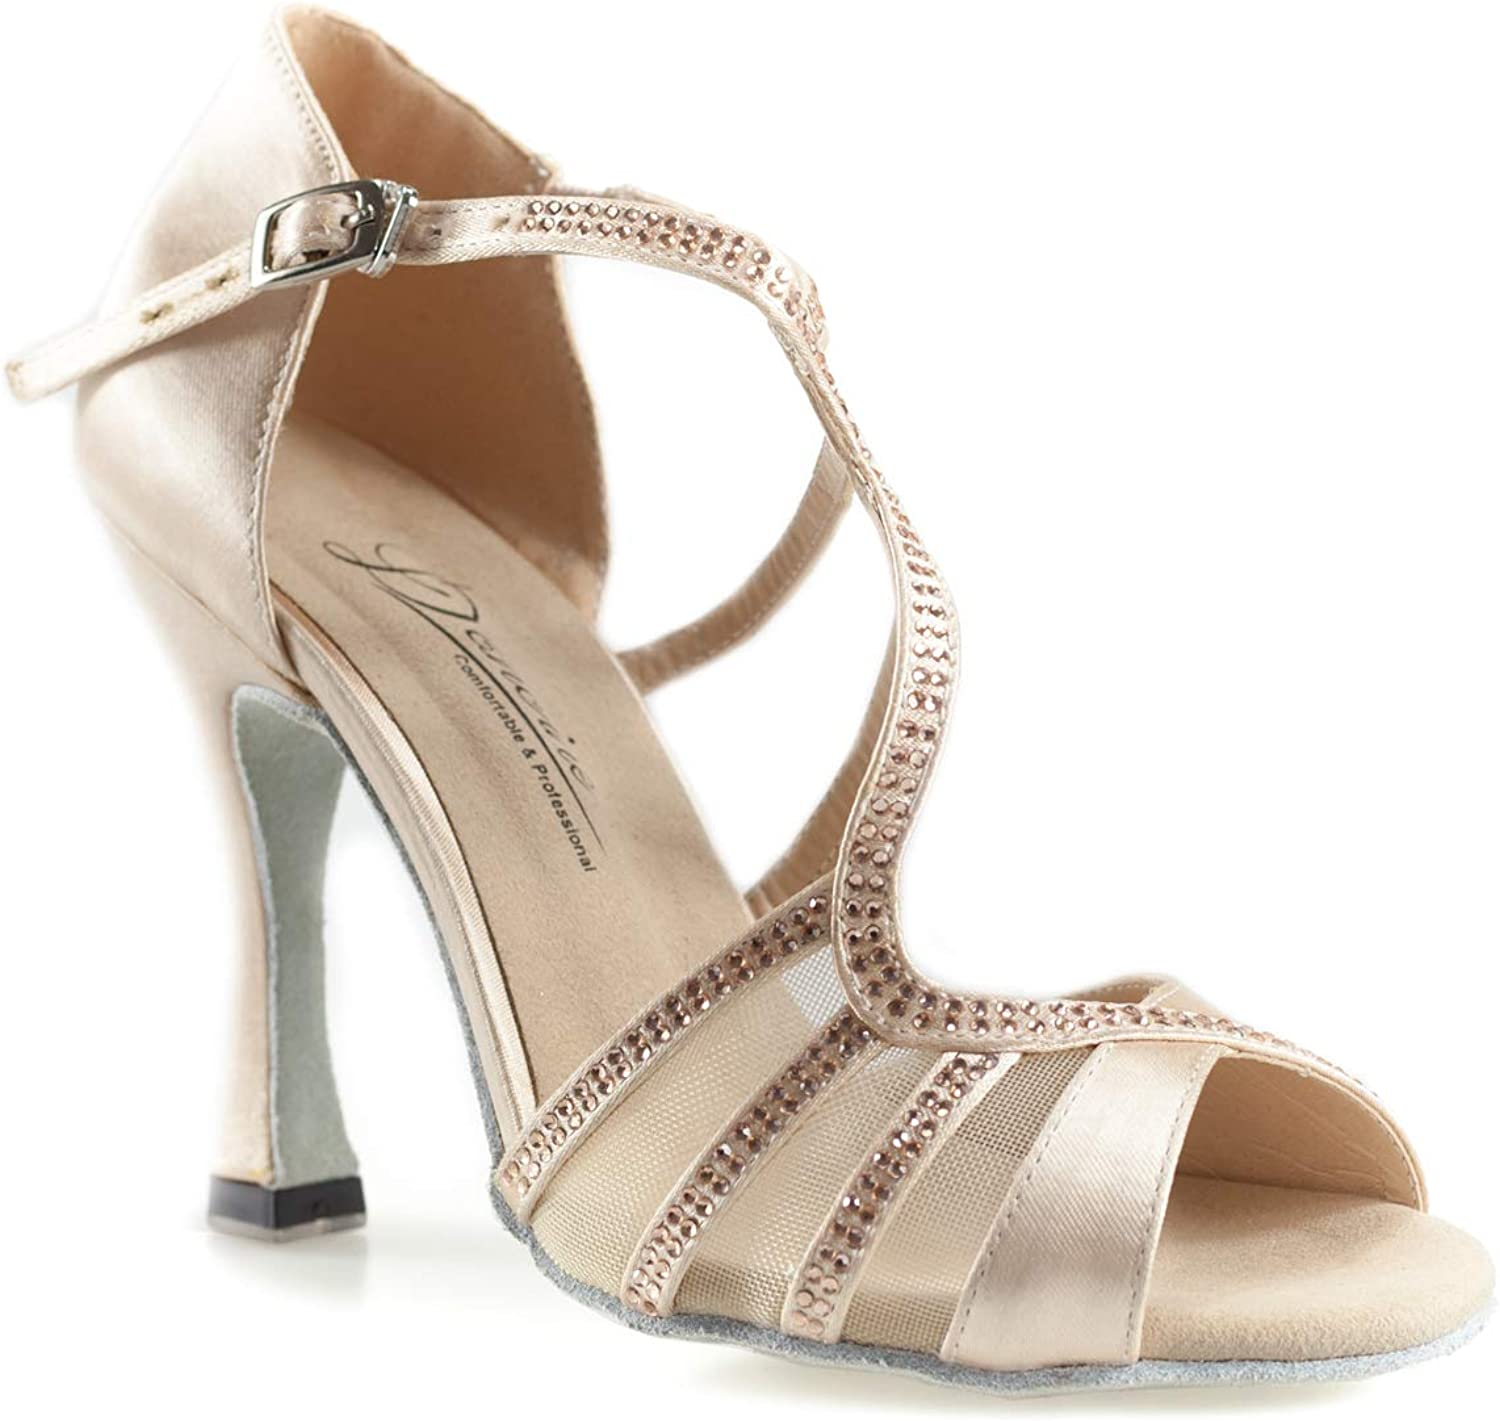 Dancine Serpenti Ballroom Latin Salsa Wedding Dance shoes,Double-Layer Heel Tip,3.9   10cm Nude